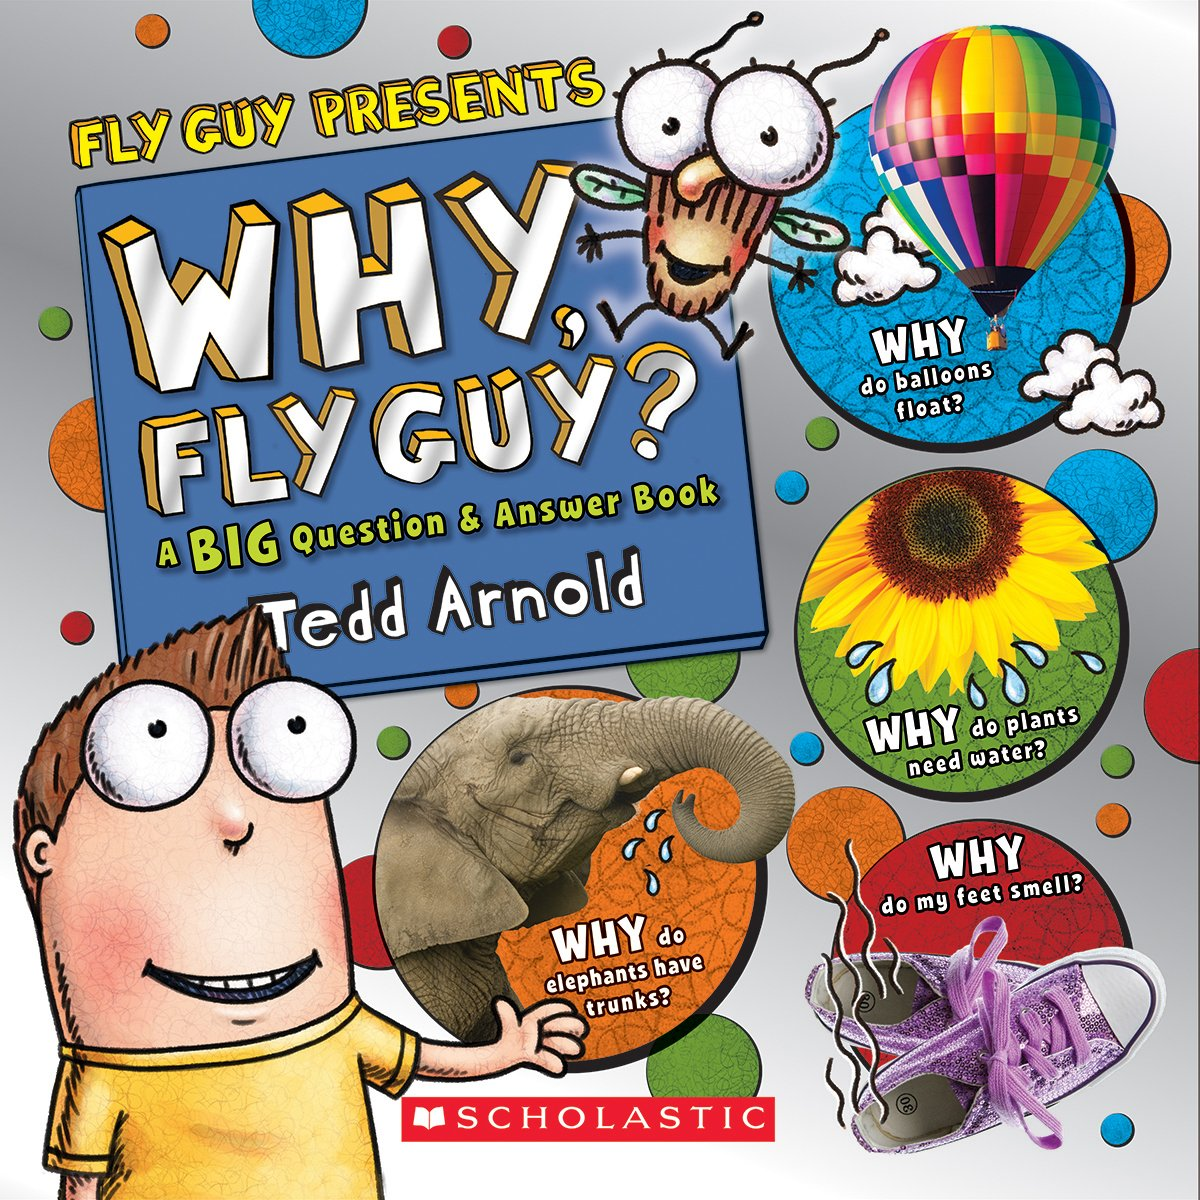 Why, Fly Guy?: Answers to Kids' BIG Questions (Fly Guy Presents) PDF